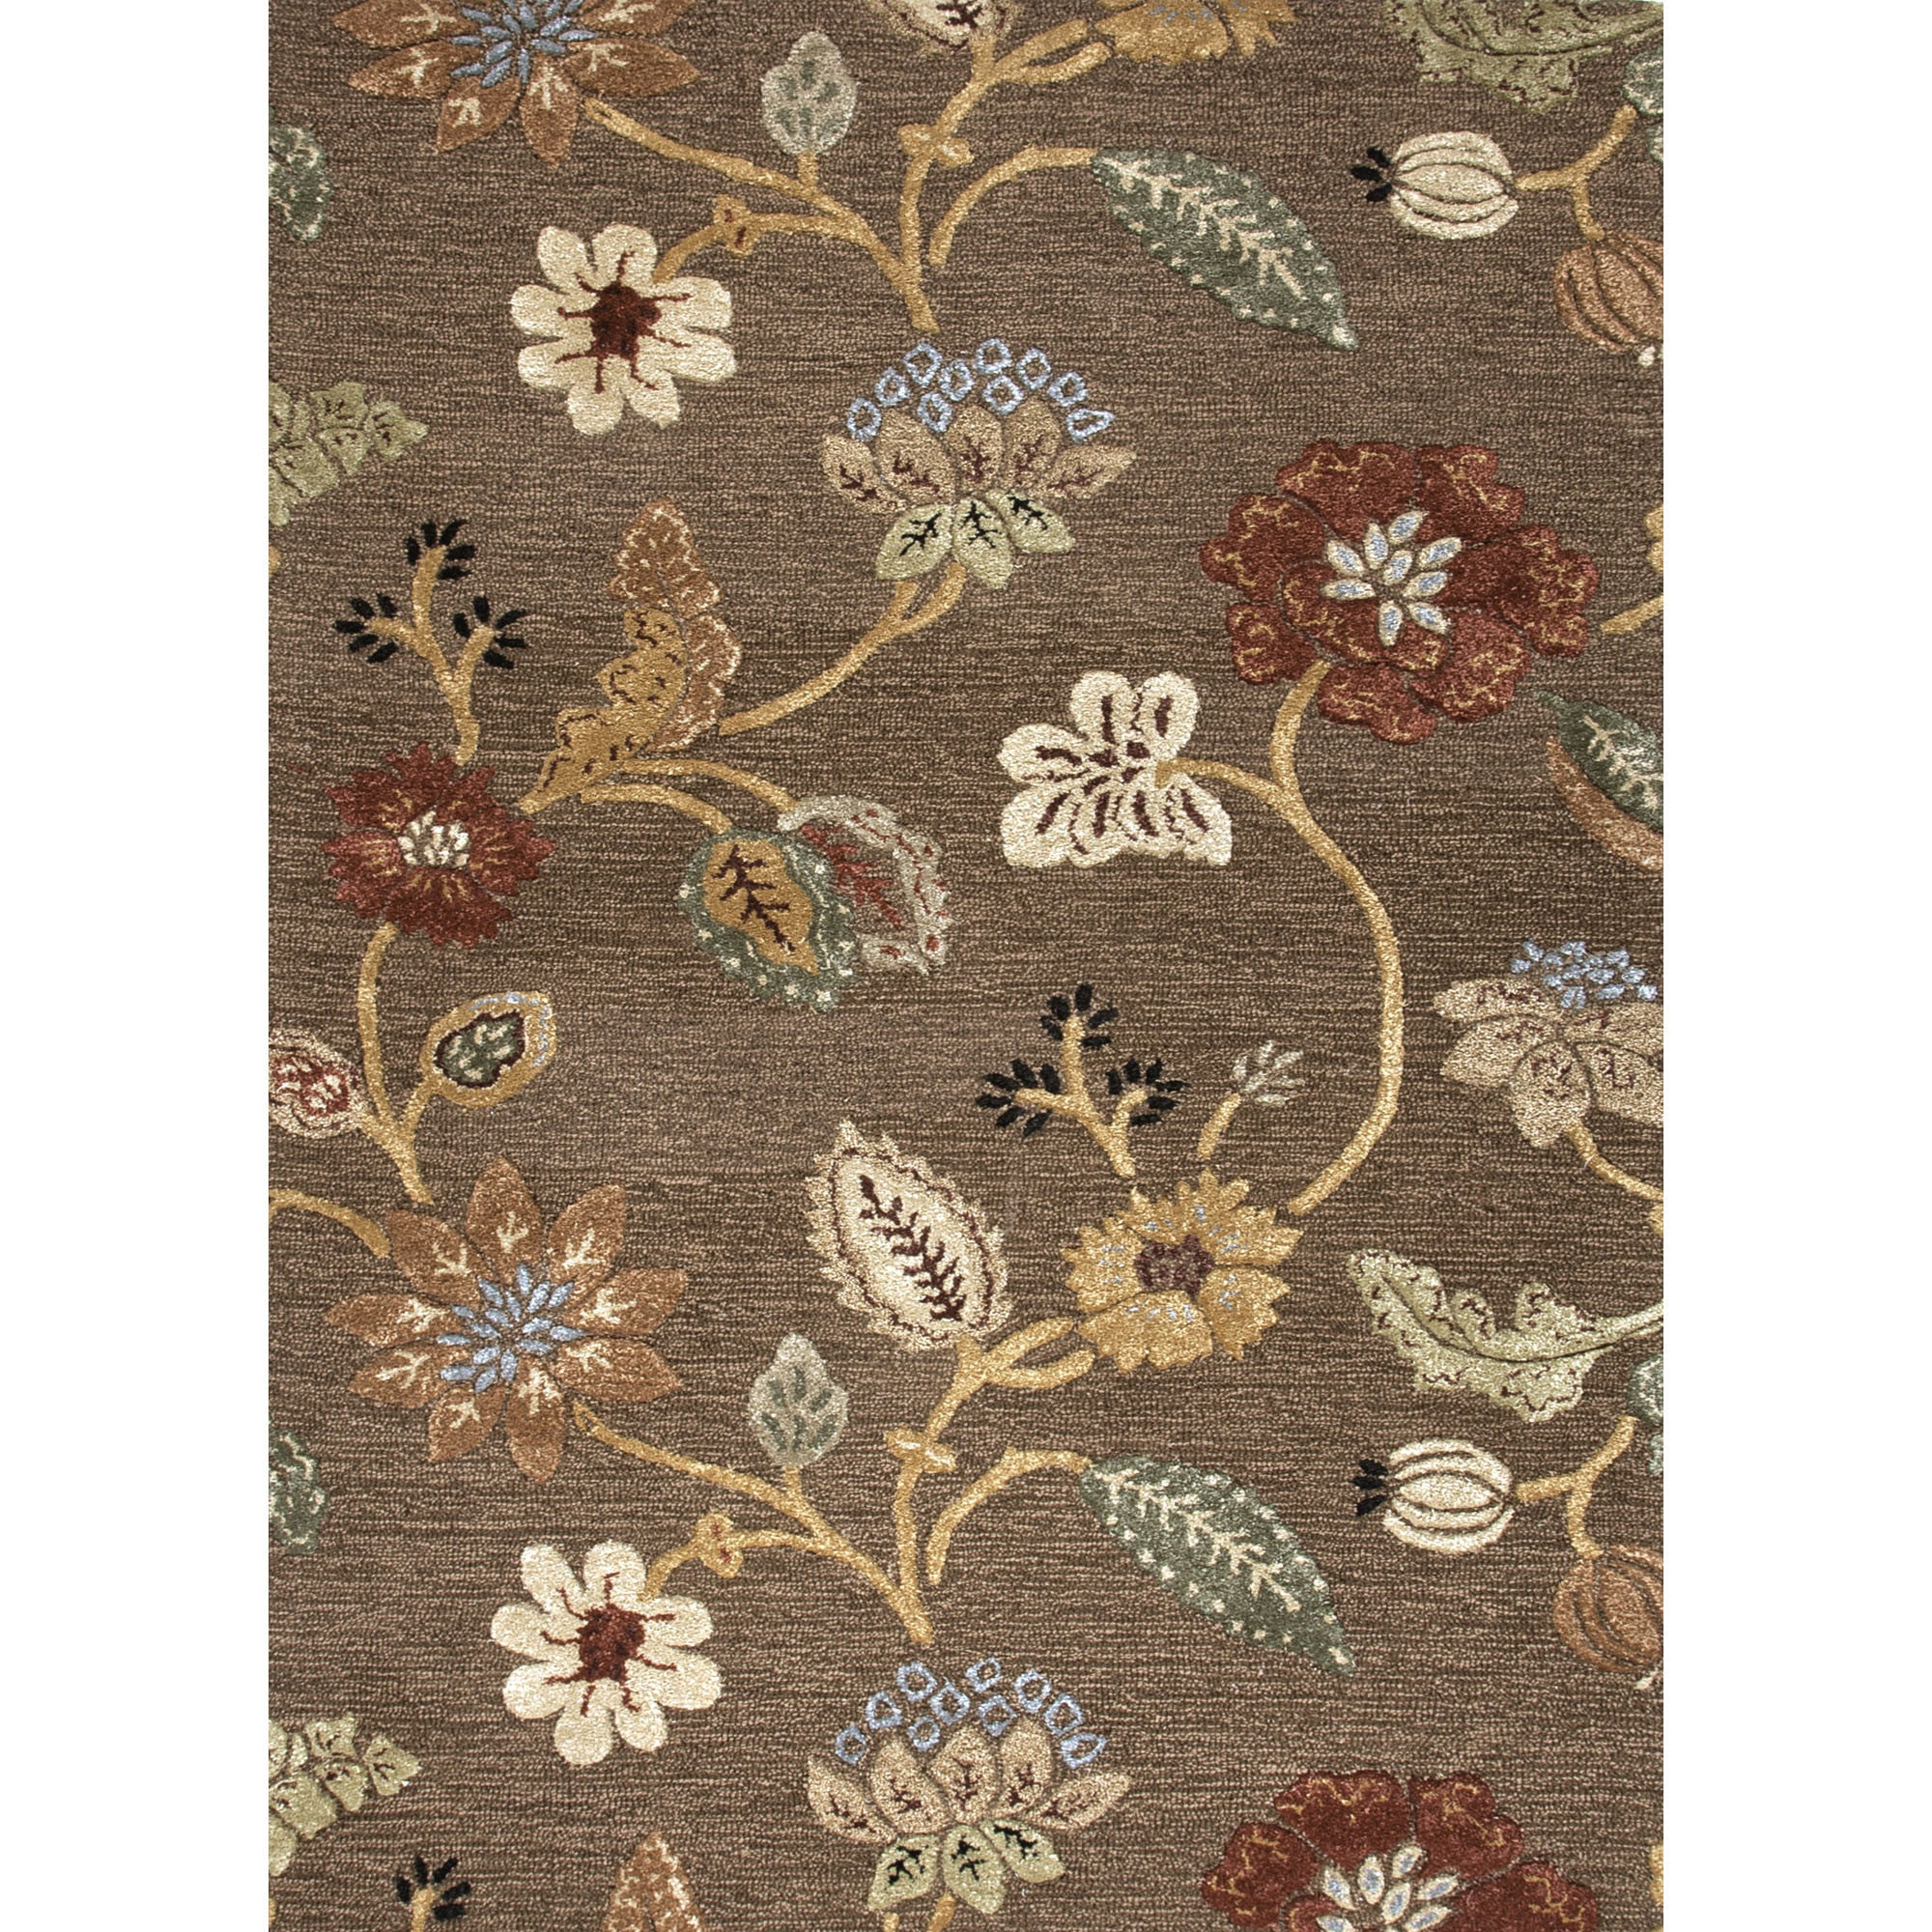 9 X 12 Nourison Nourmak Hand Knotted 100 Wool Persian: Jaipur Rugs Transitional Floral Pattern Brown/Yellow Wool